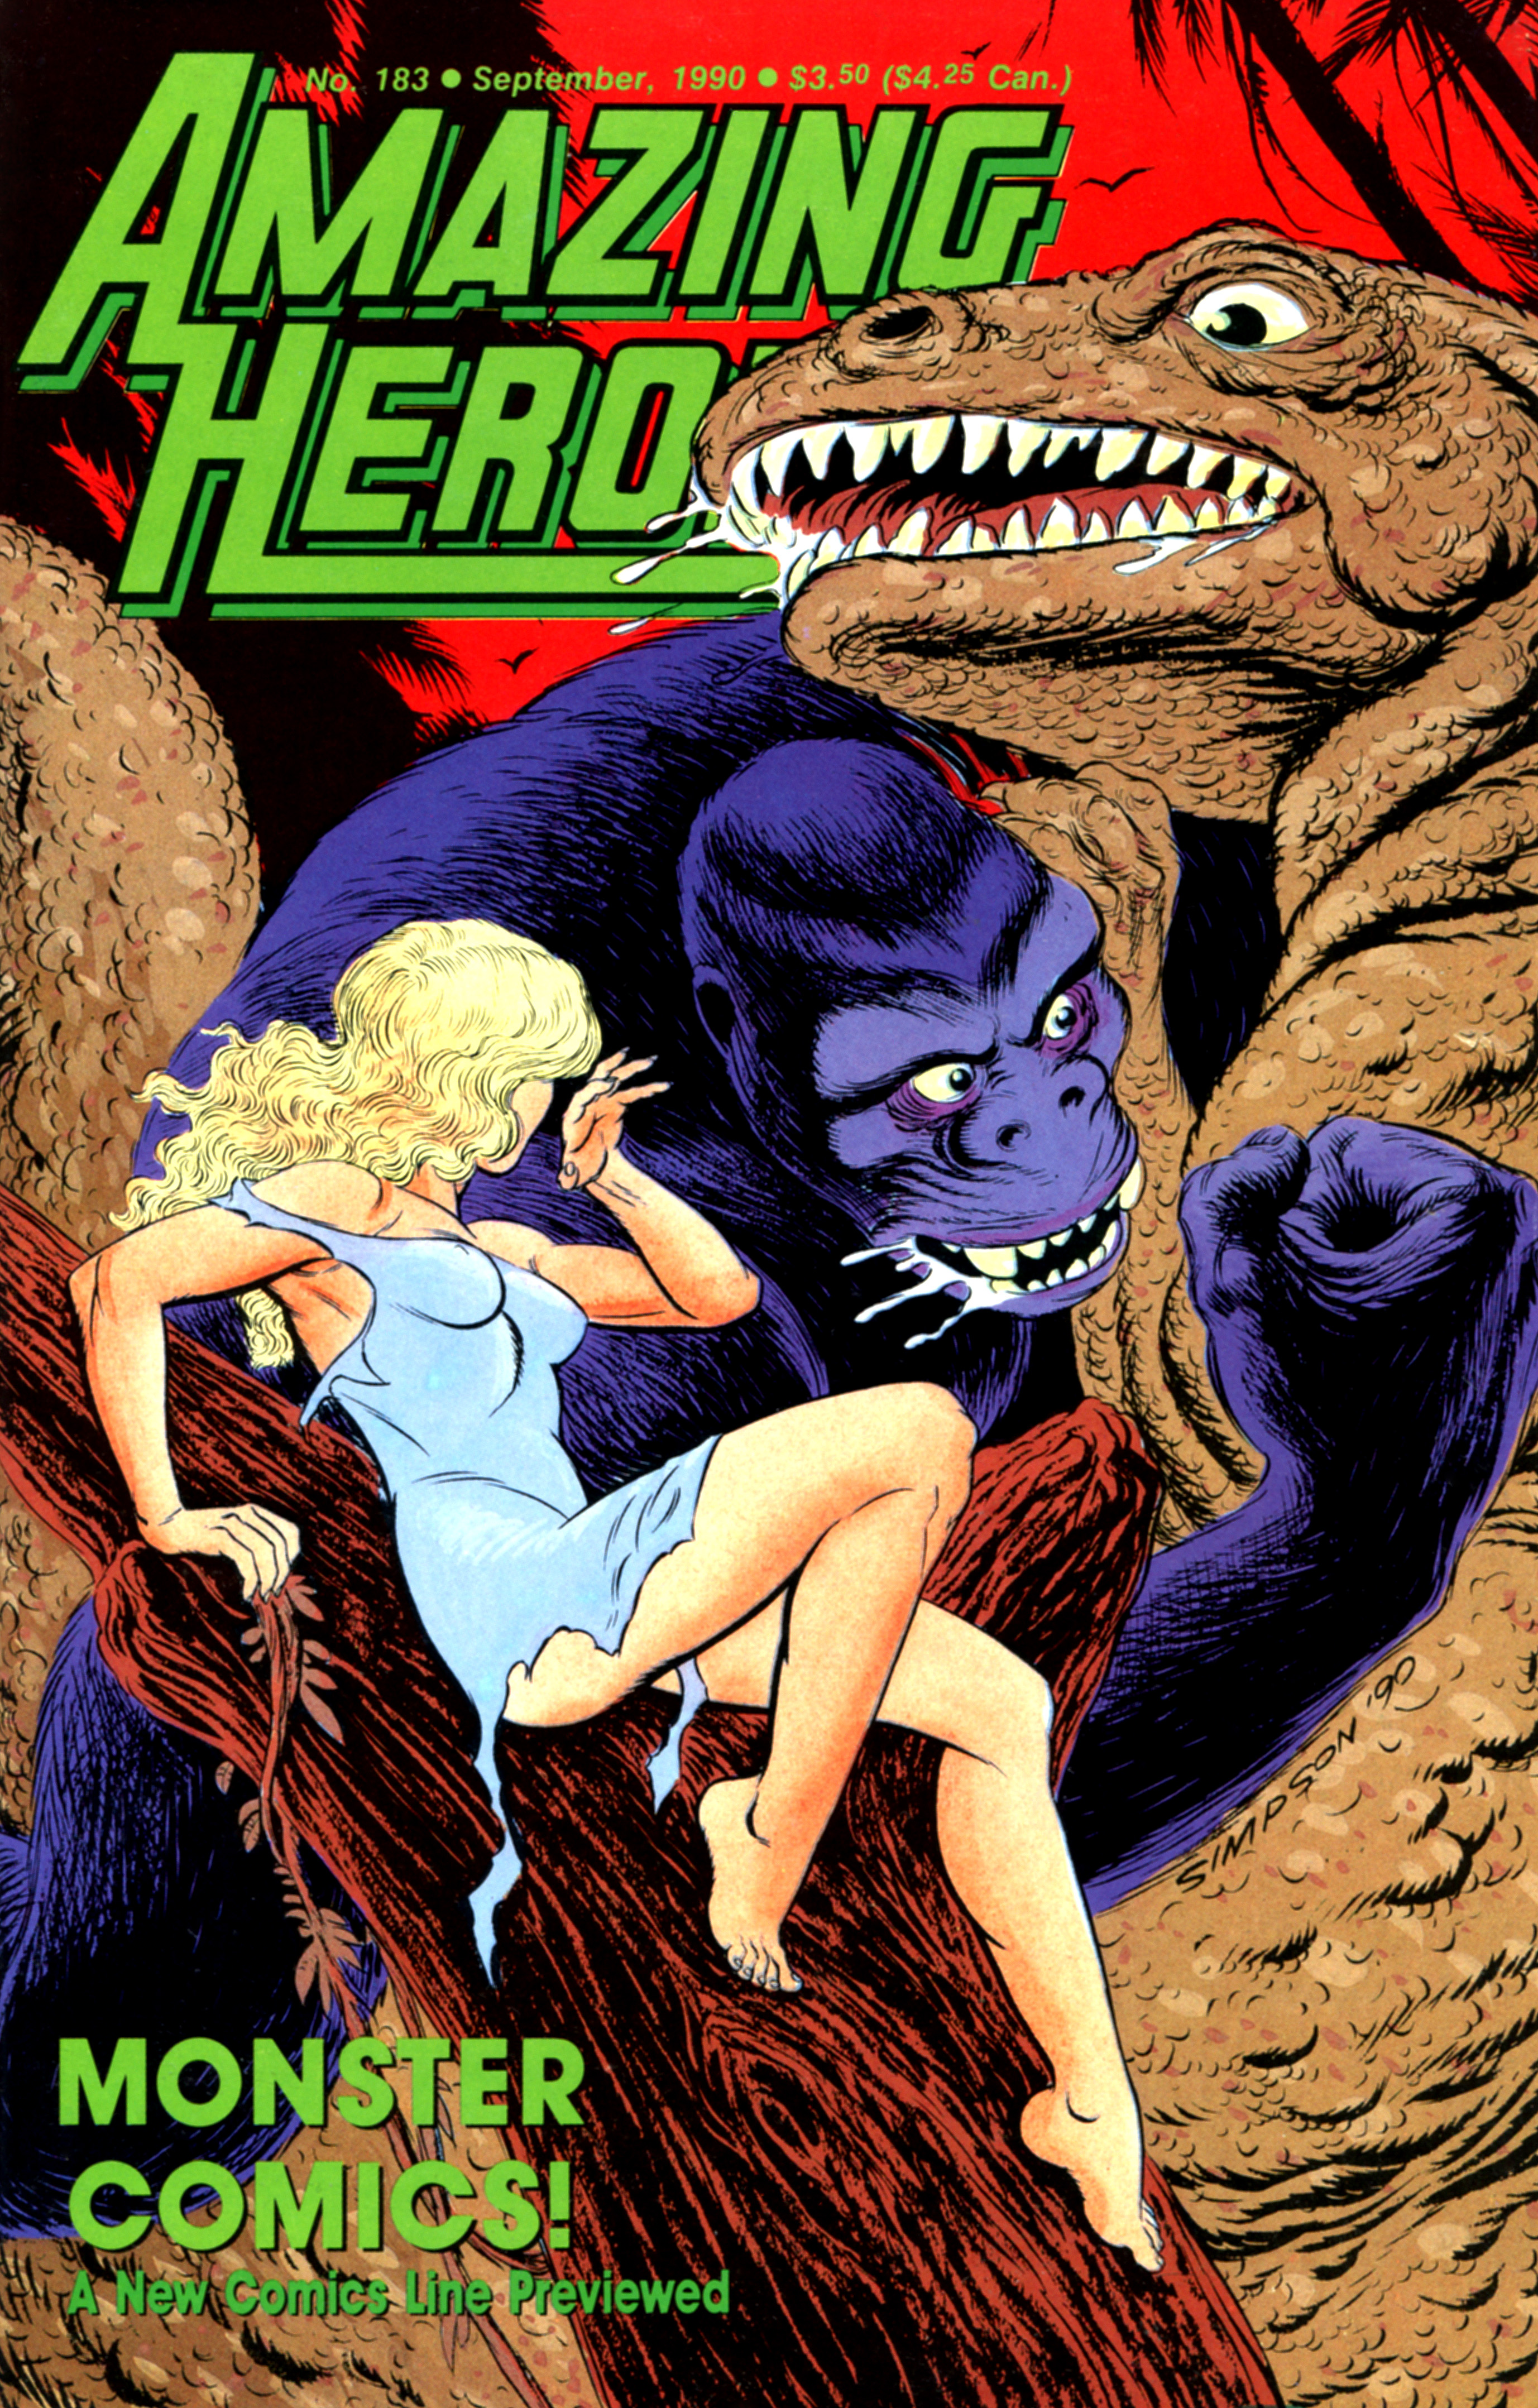 Read online Amazing Heroes comic -  Issue #183 - 1